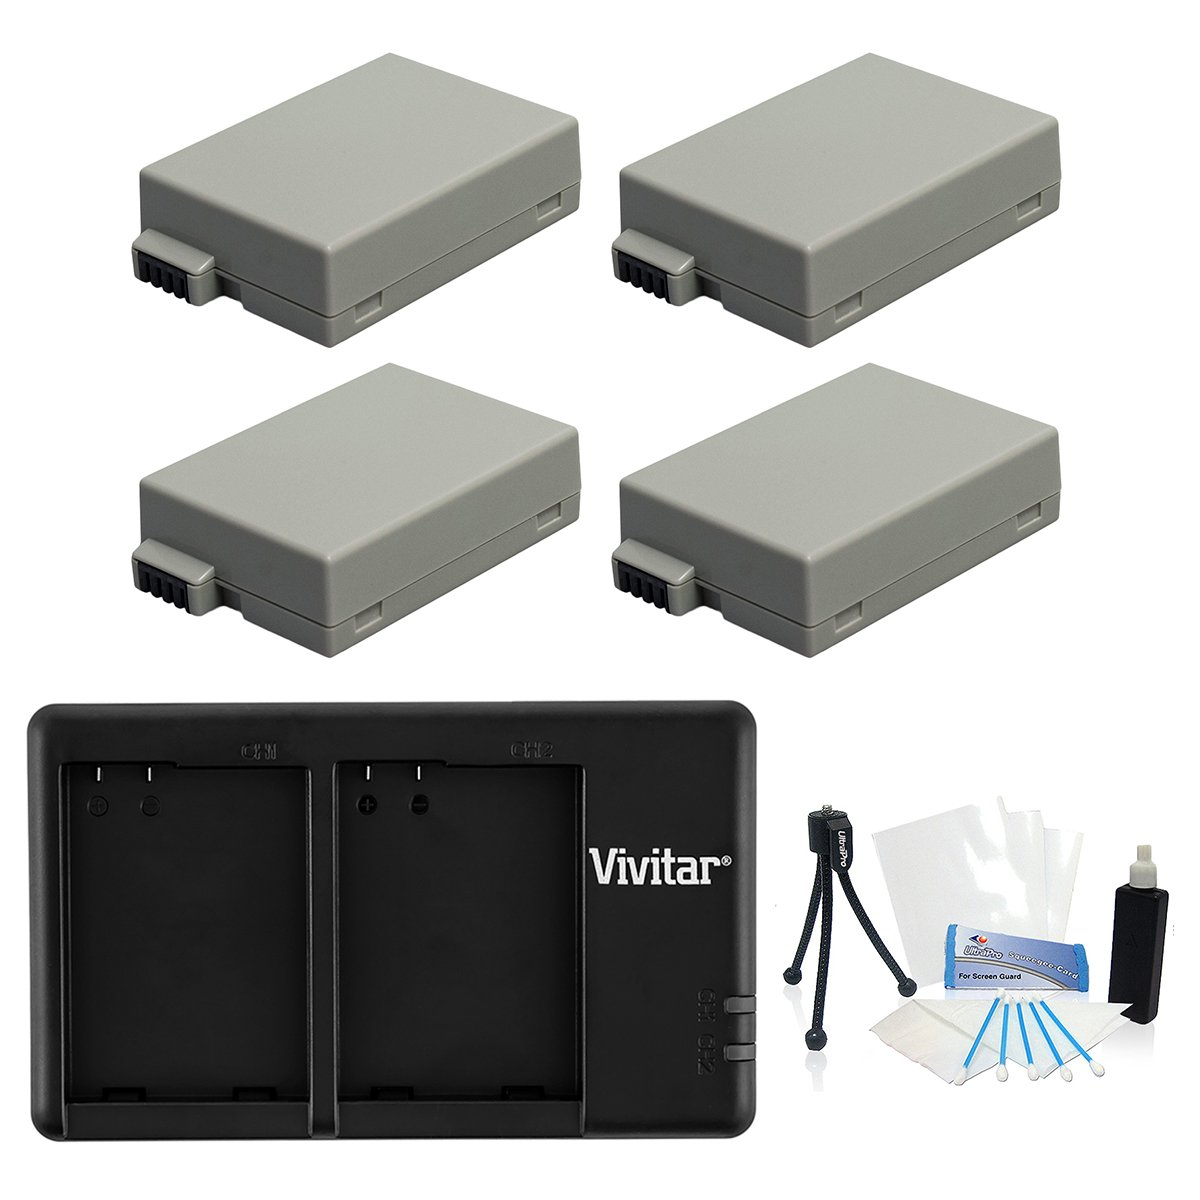 4-Pack LP-E8 High-Capacity Replacement Battery with Rapid Dual Charger for Select Canon Digital Cameras - UltraPro Bundle Includes: Camera Cleaning Kit, Camera Screen Protector, Mini Travel Tripod